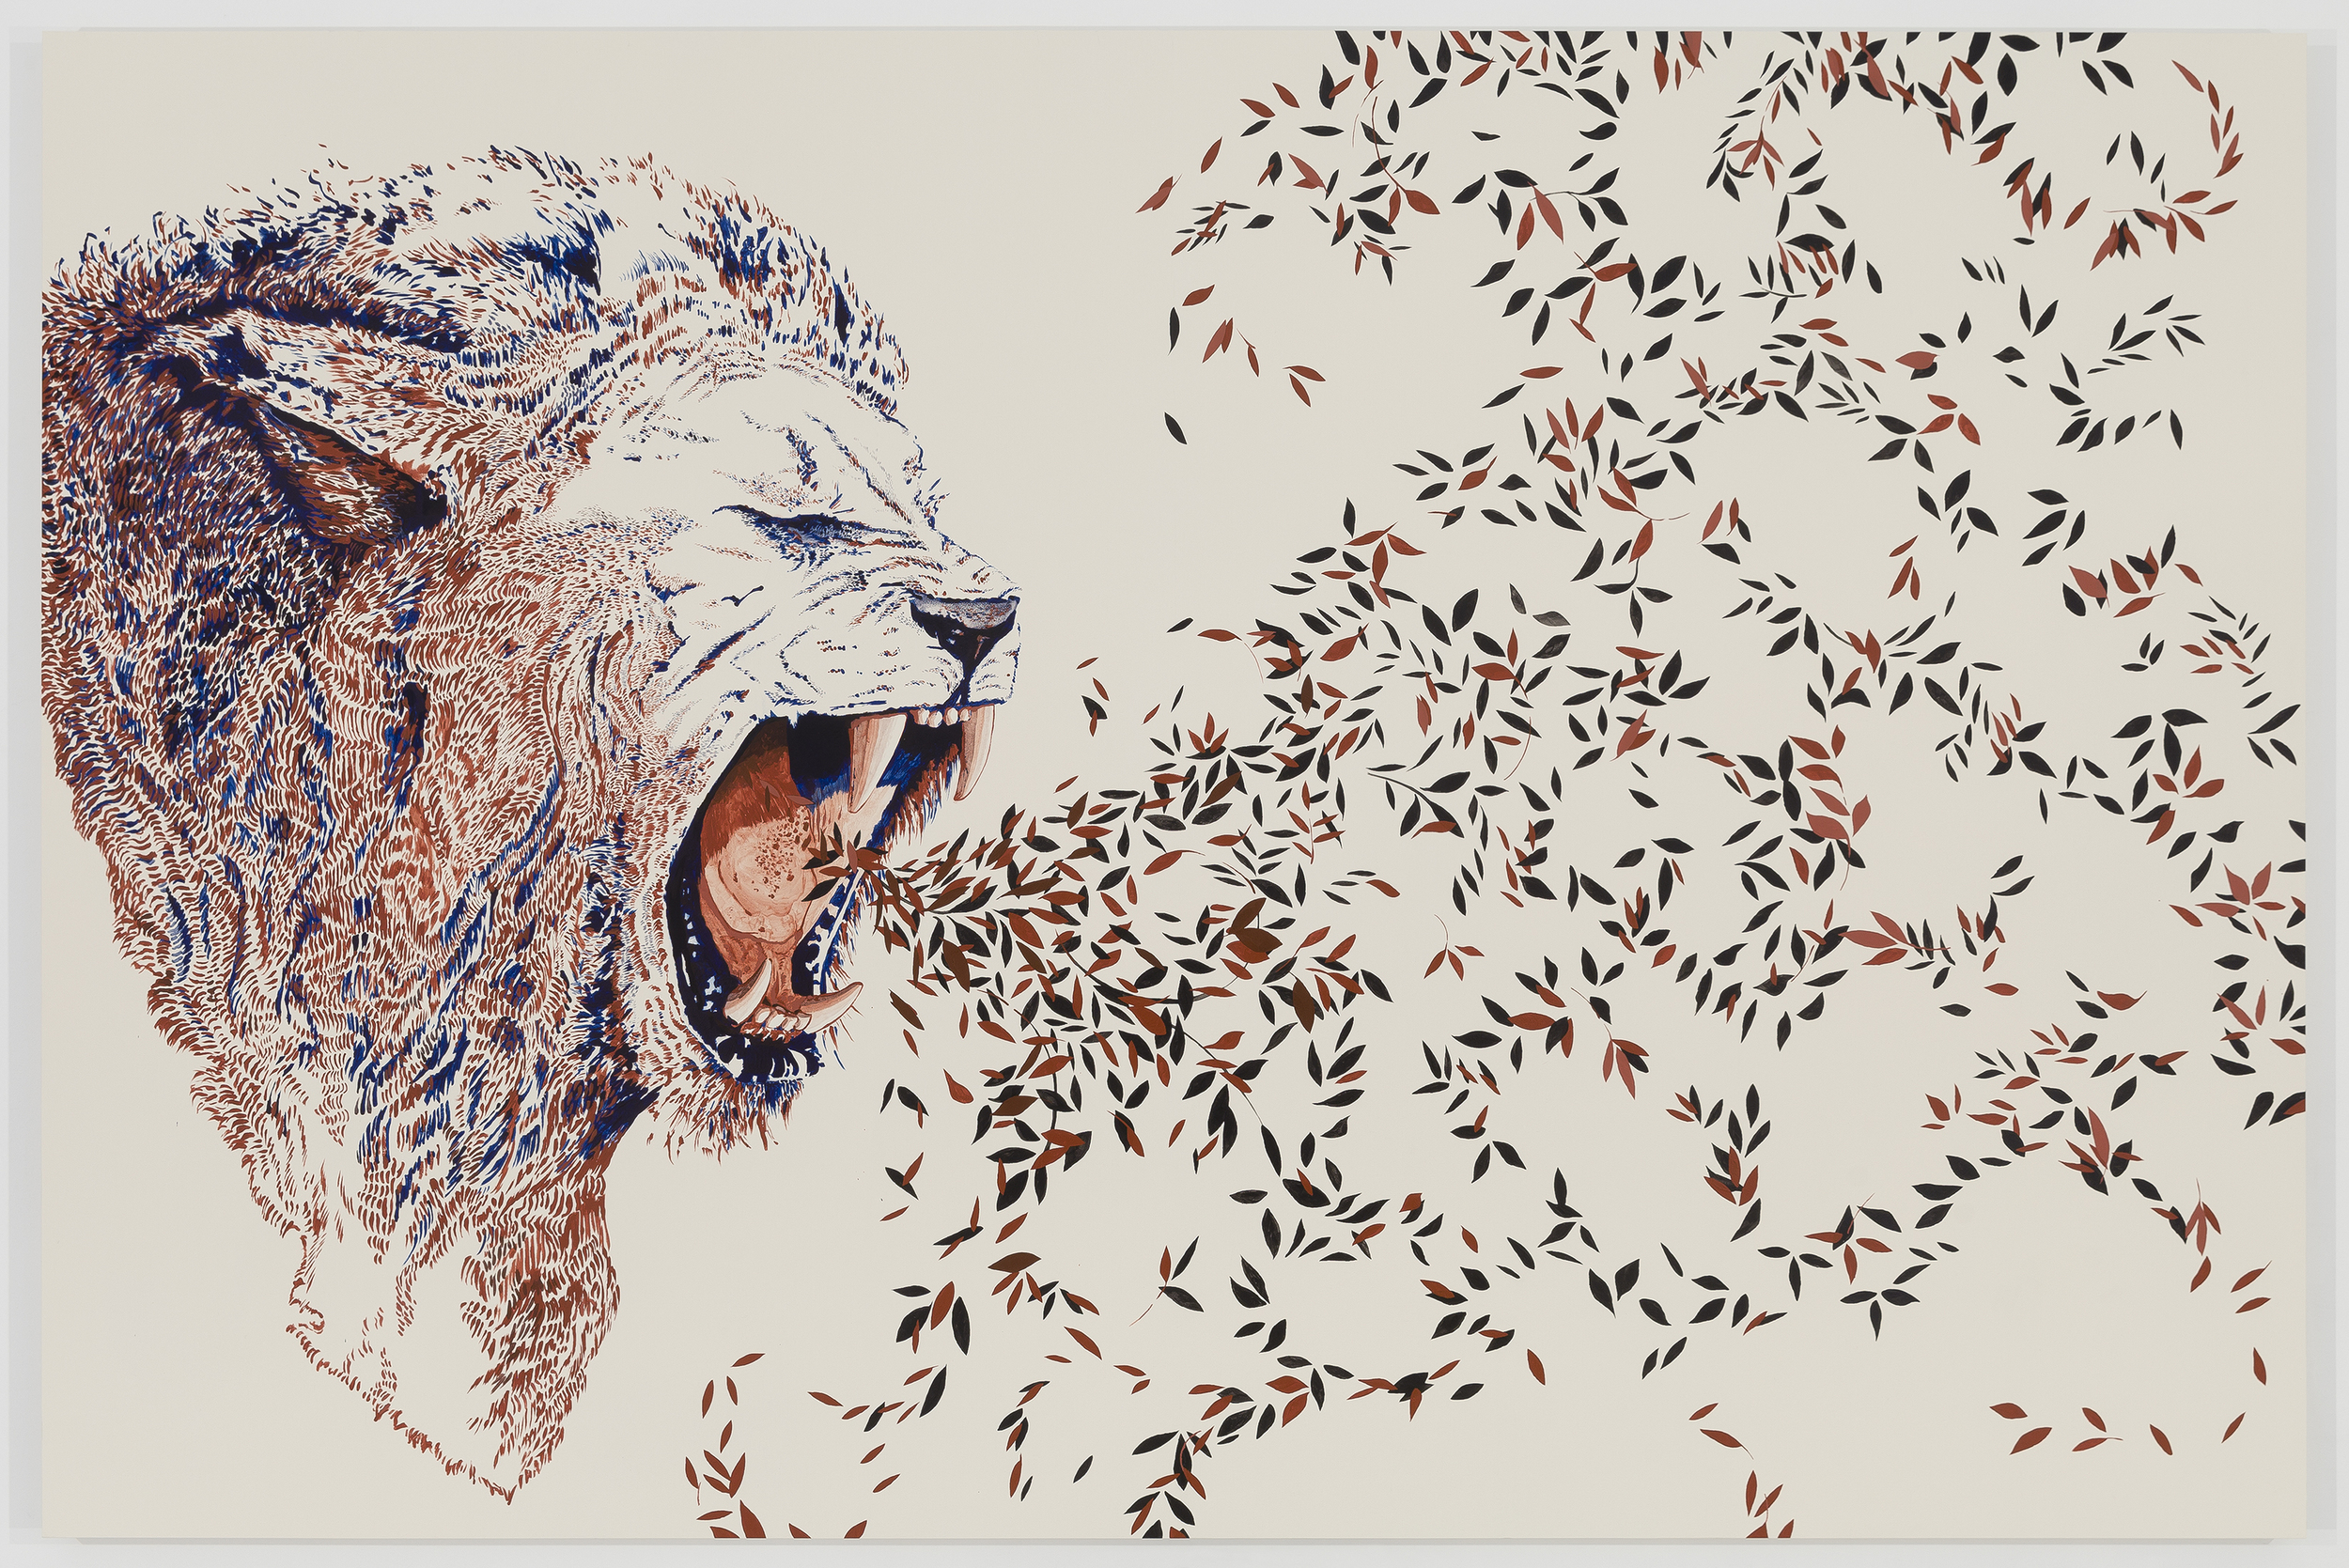 THE CATHARTIC LION  2014 ACRYLIC ON PANEL 60 X 90 INCHES